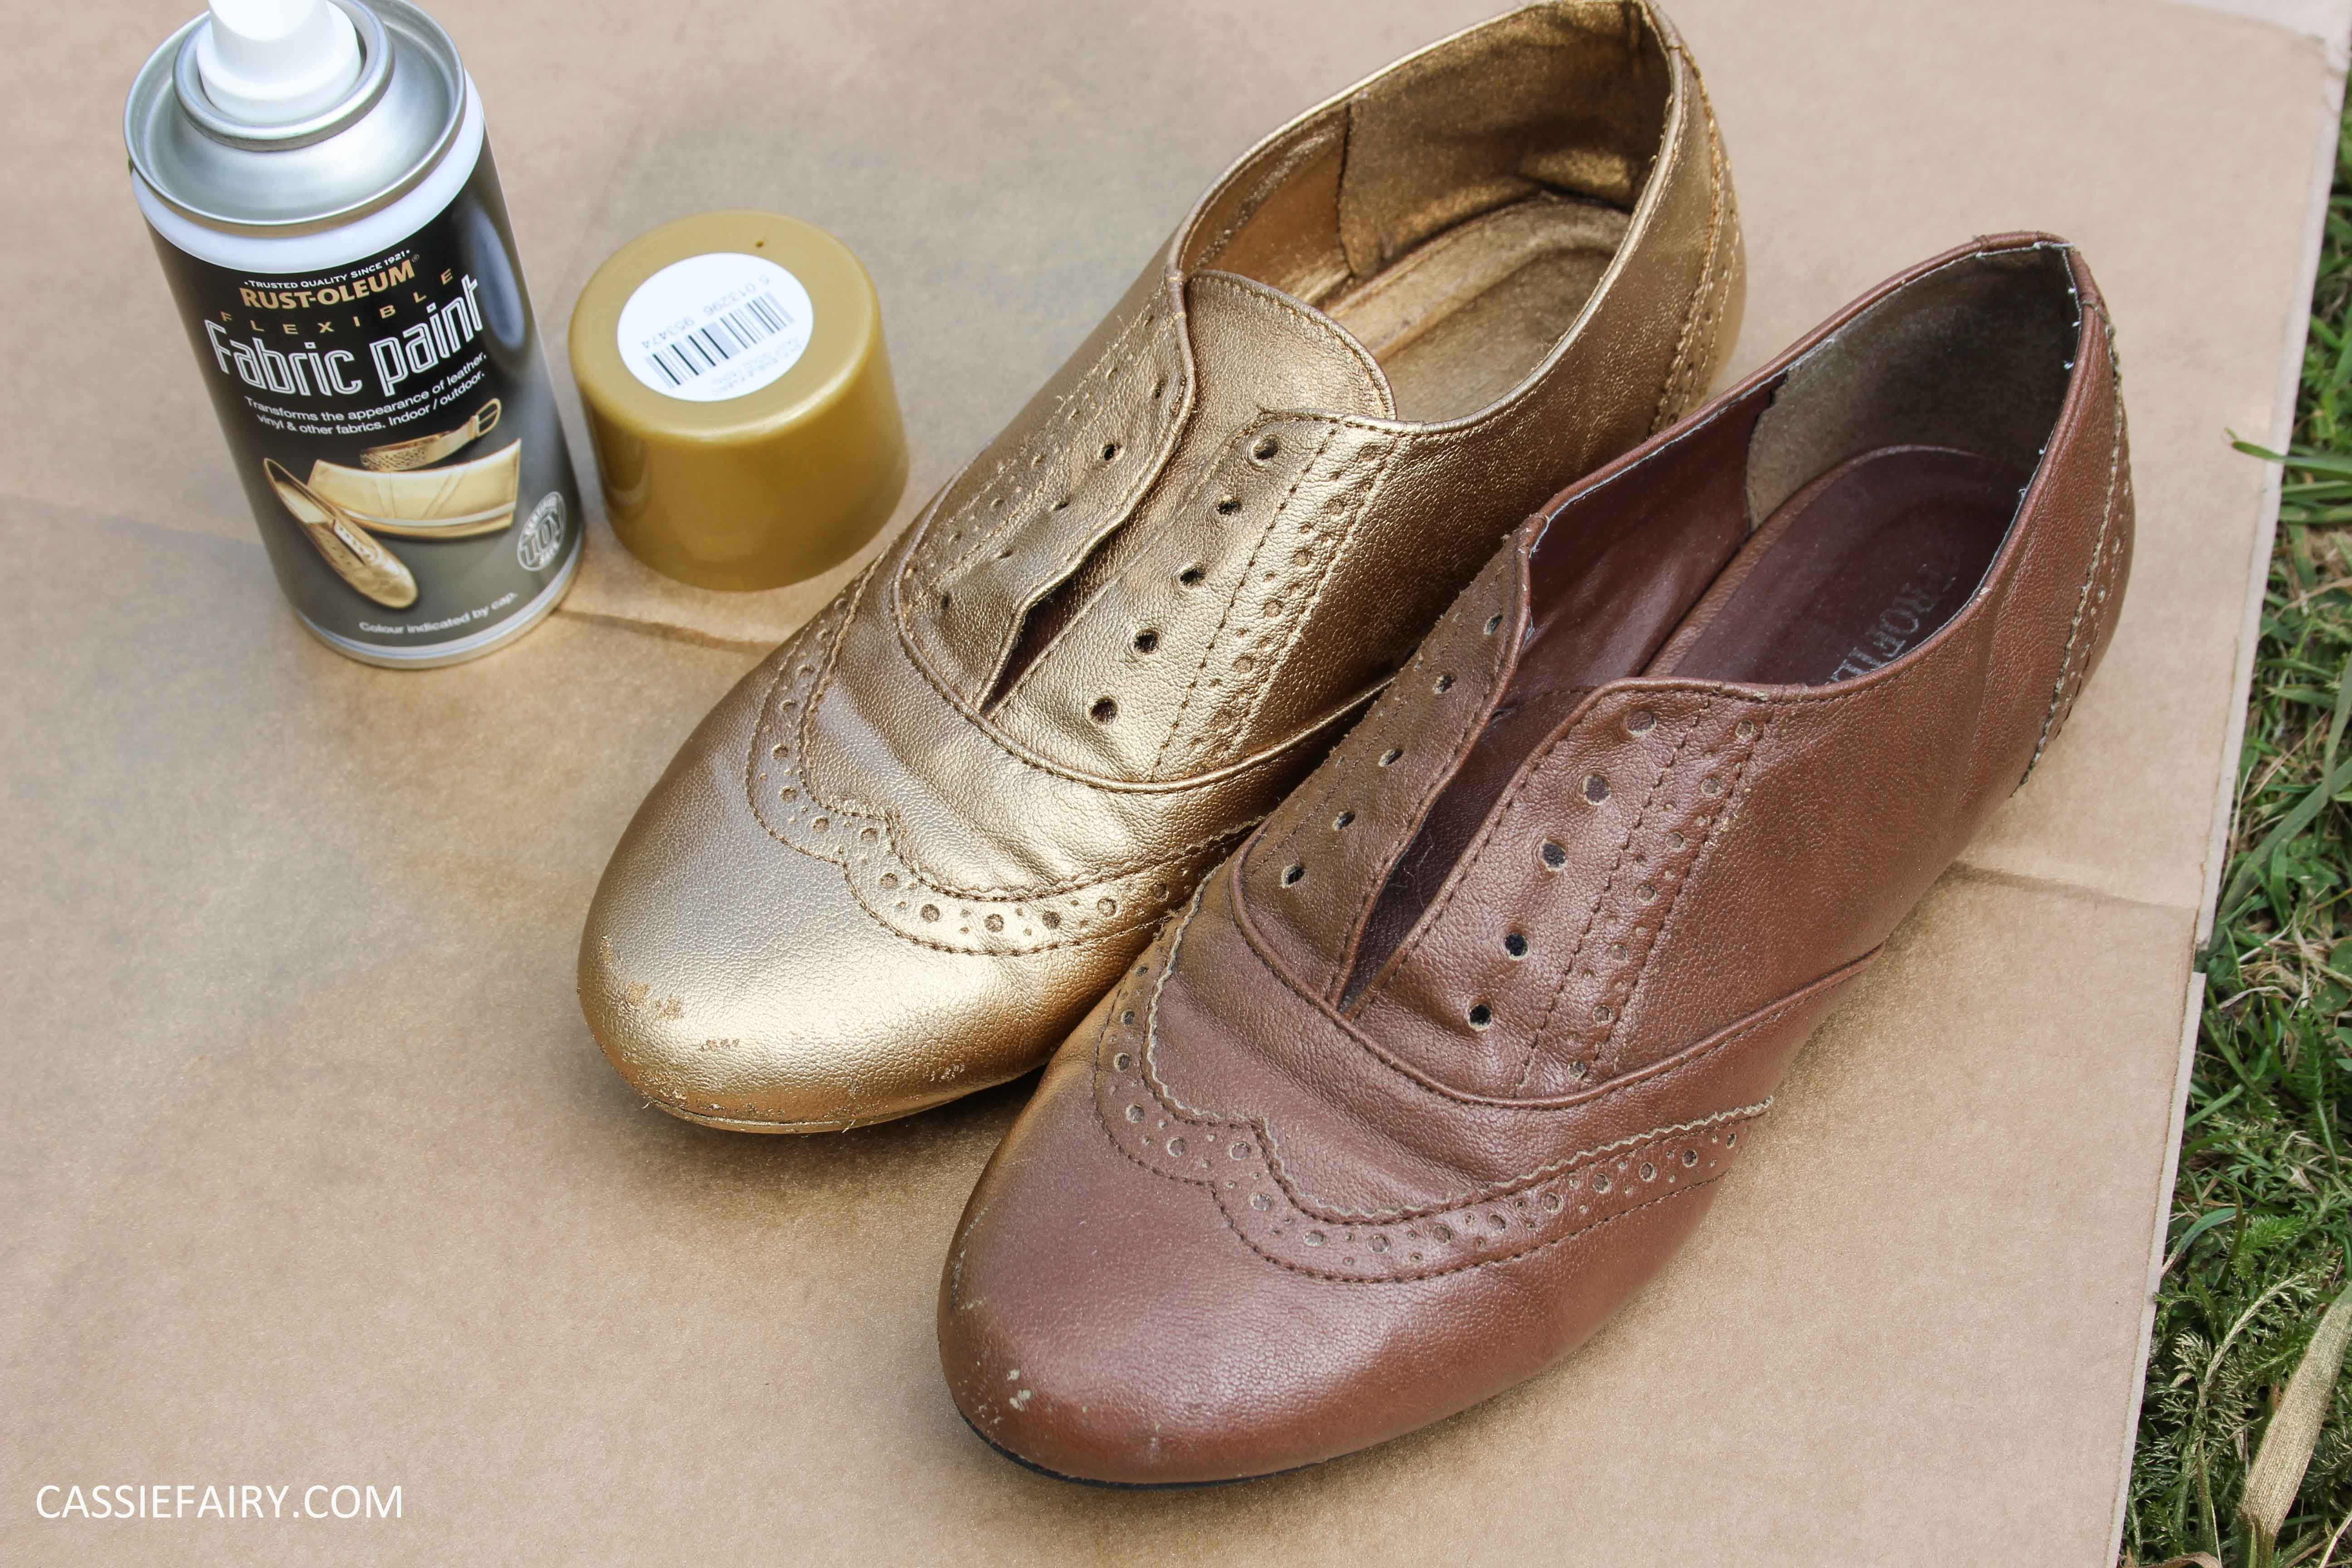 Discussion on this topic: How to Paint Fabric Shoes, how-to-paint-fabric-shoes/